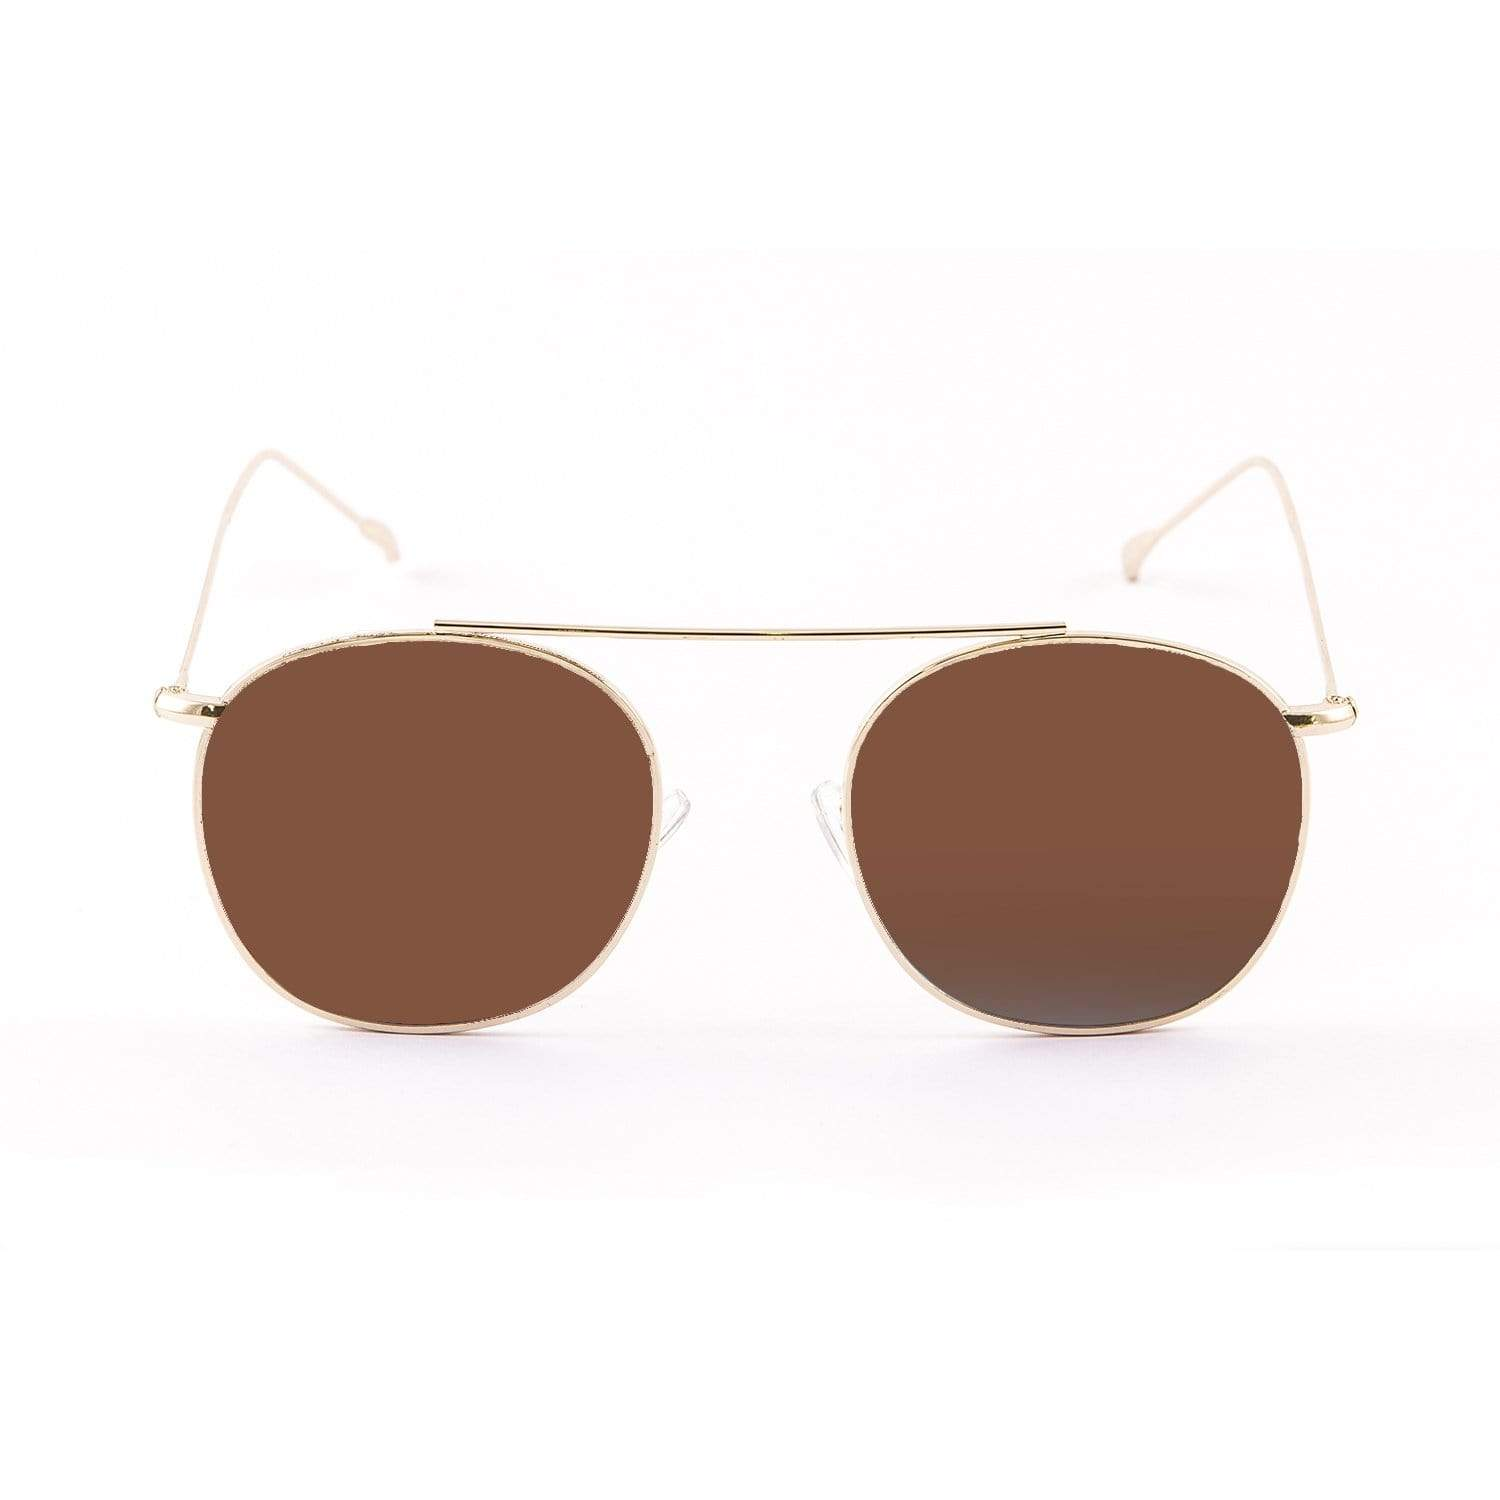 Ocean Sunglasses Accessories Sunglasses brown / NOSIZE Ocean Sunglasses - MEMPHIS